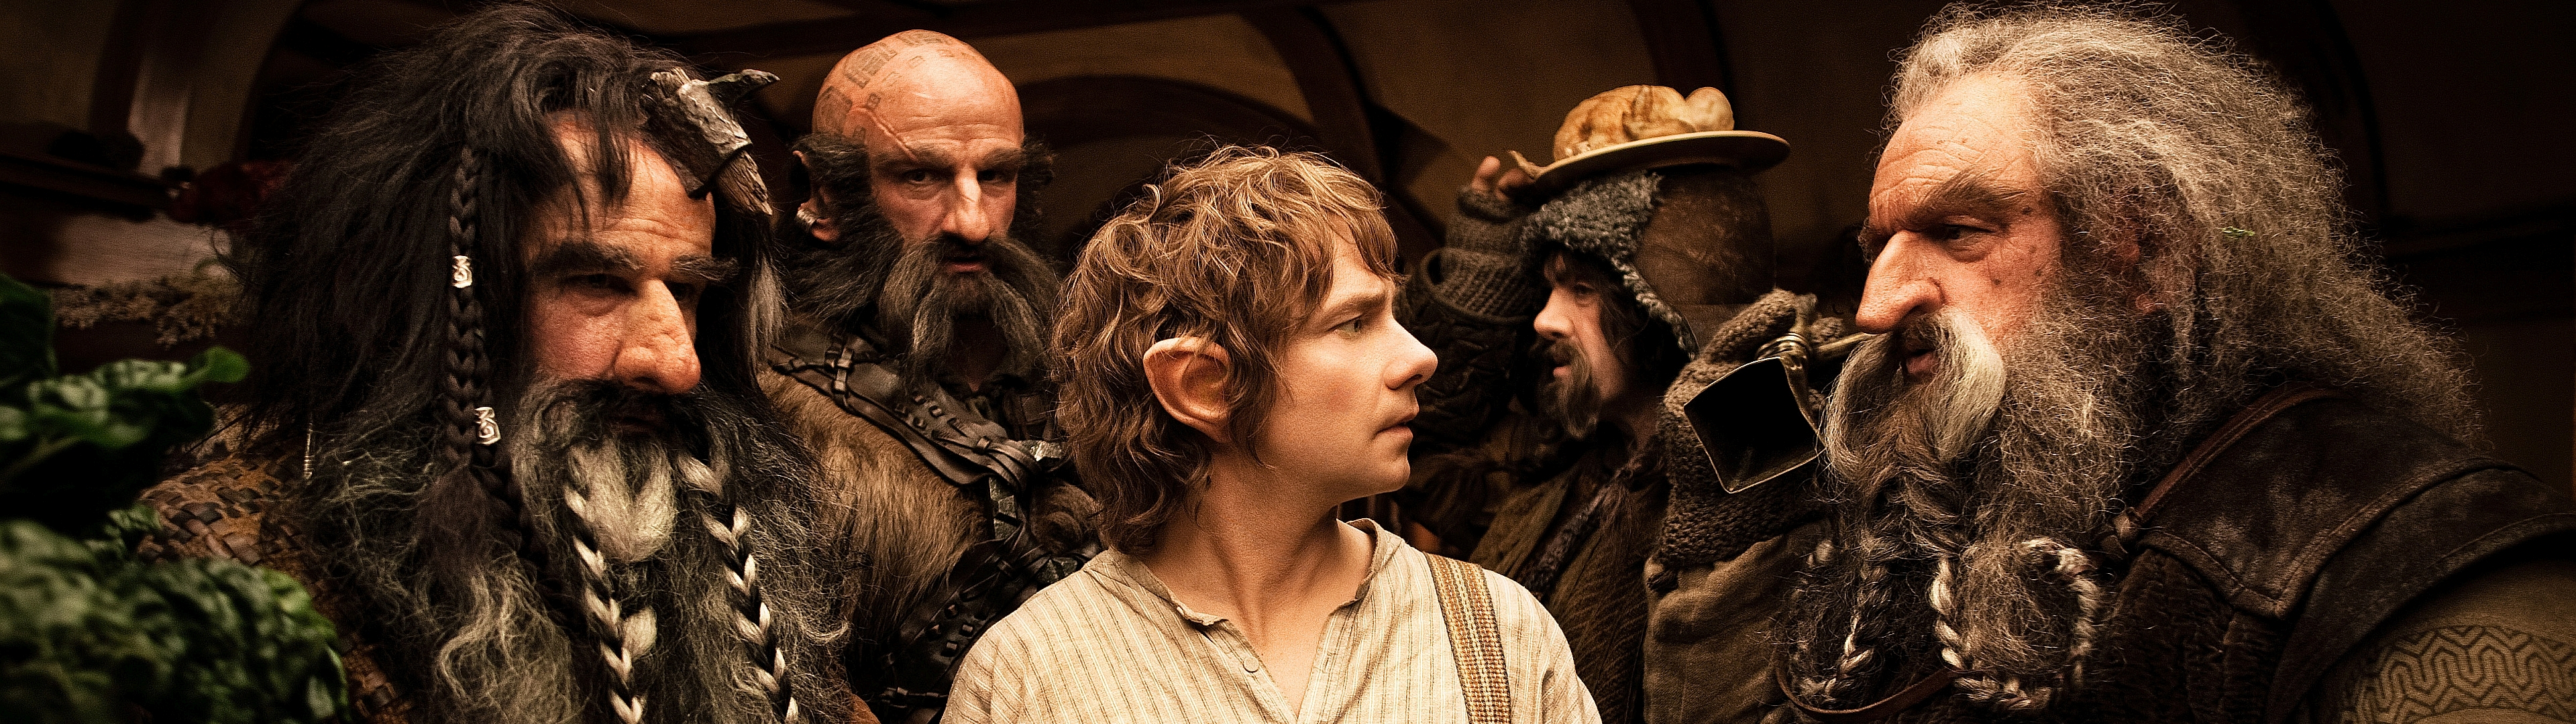 bilbo-and-the-dwarves-from-the-hobbit.jpg